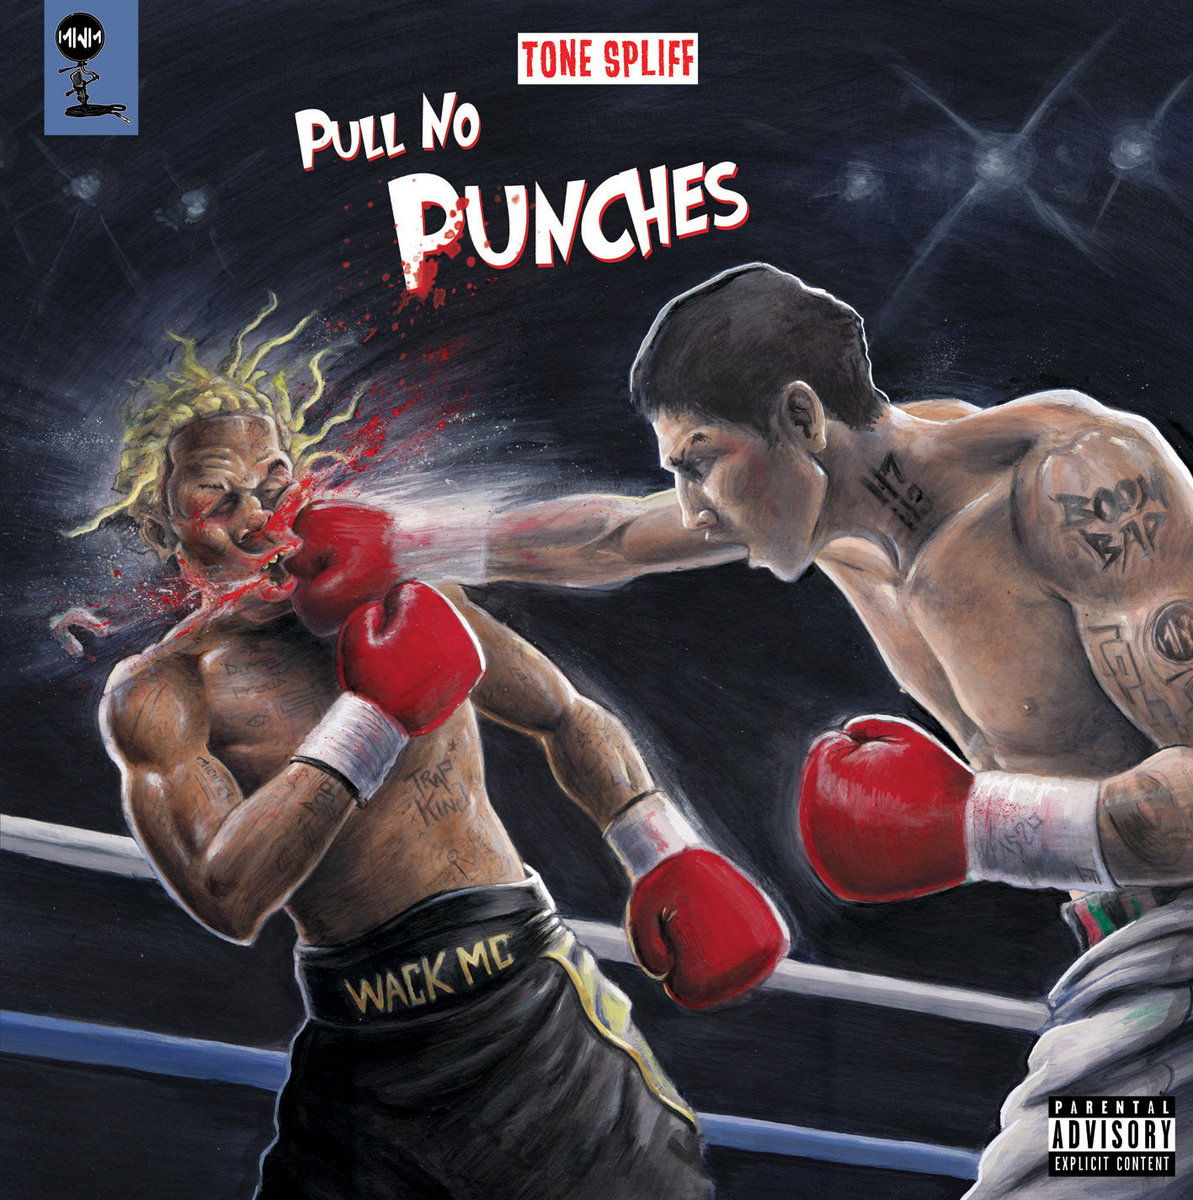 Pull_no_punches